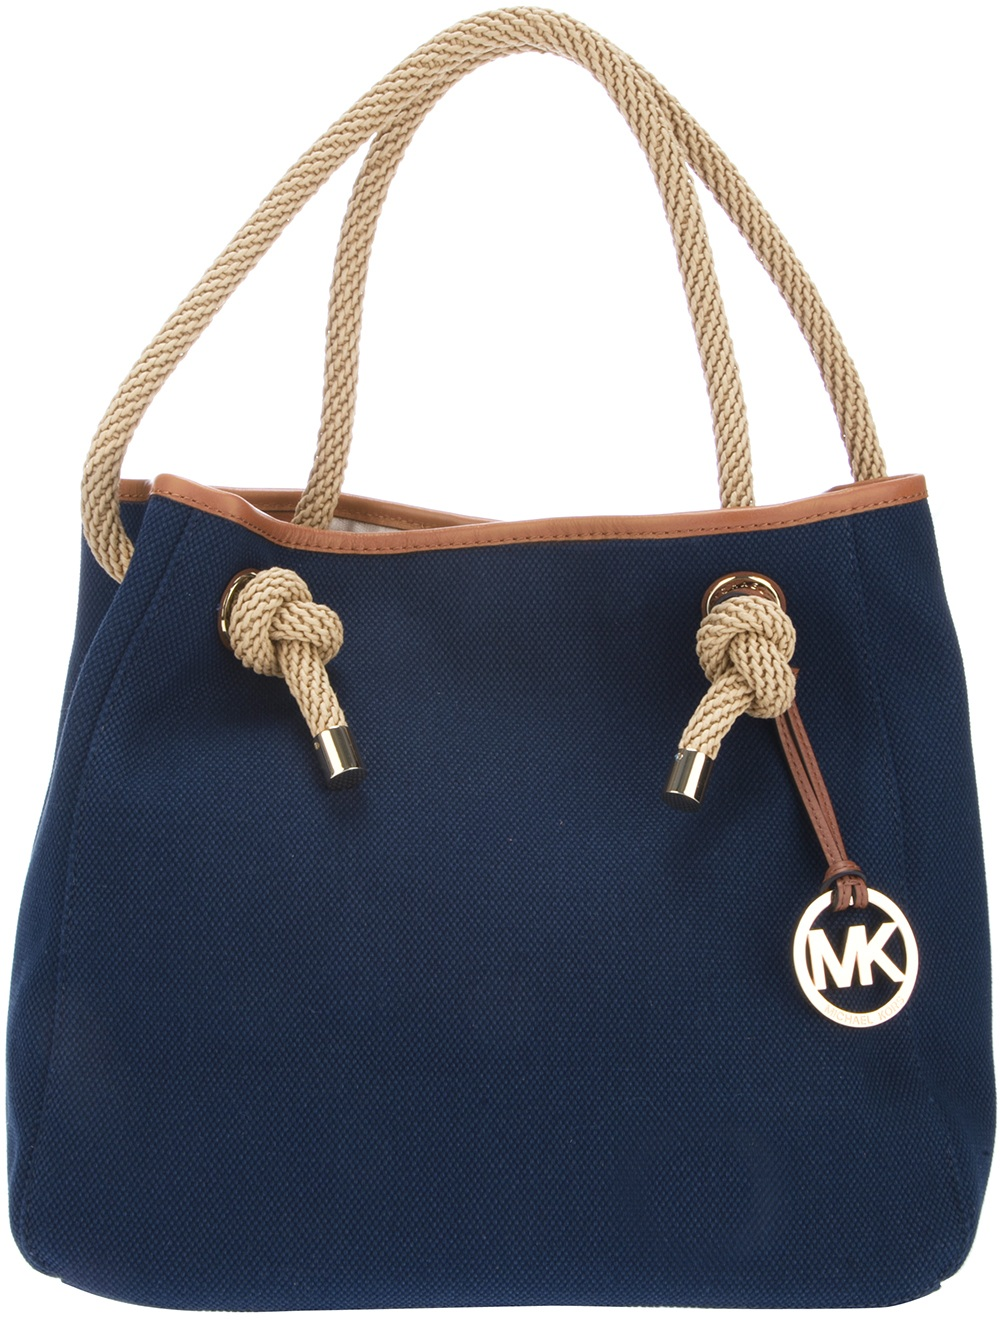 5a88375e4ae9 MICHAEL Michael Kors Rope Handle Shopper Tote in Blue - Lyst